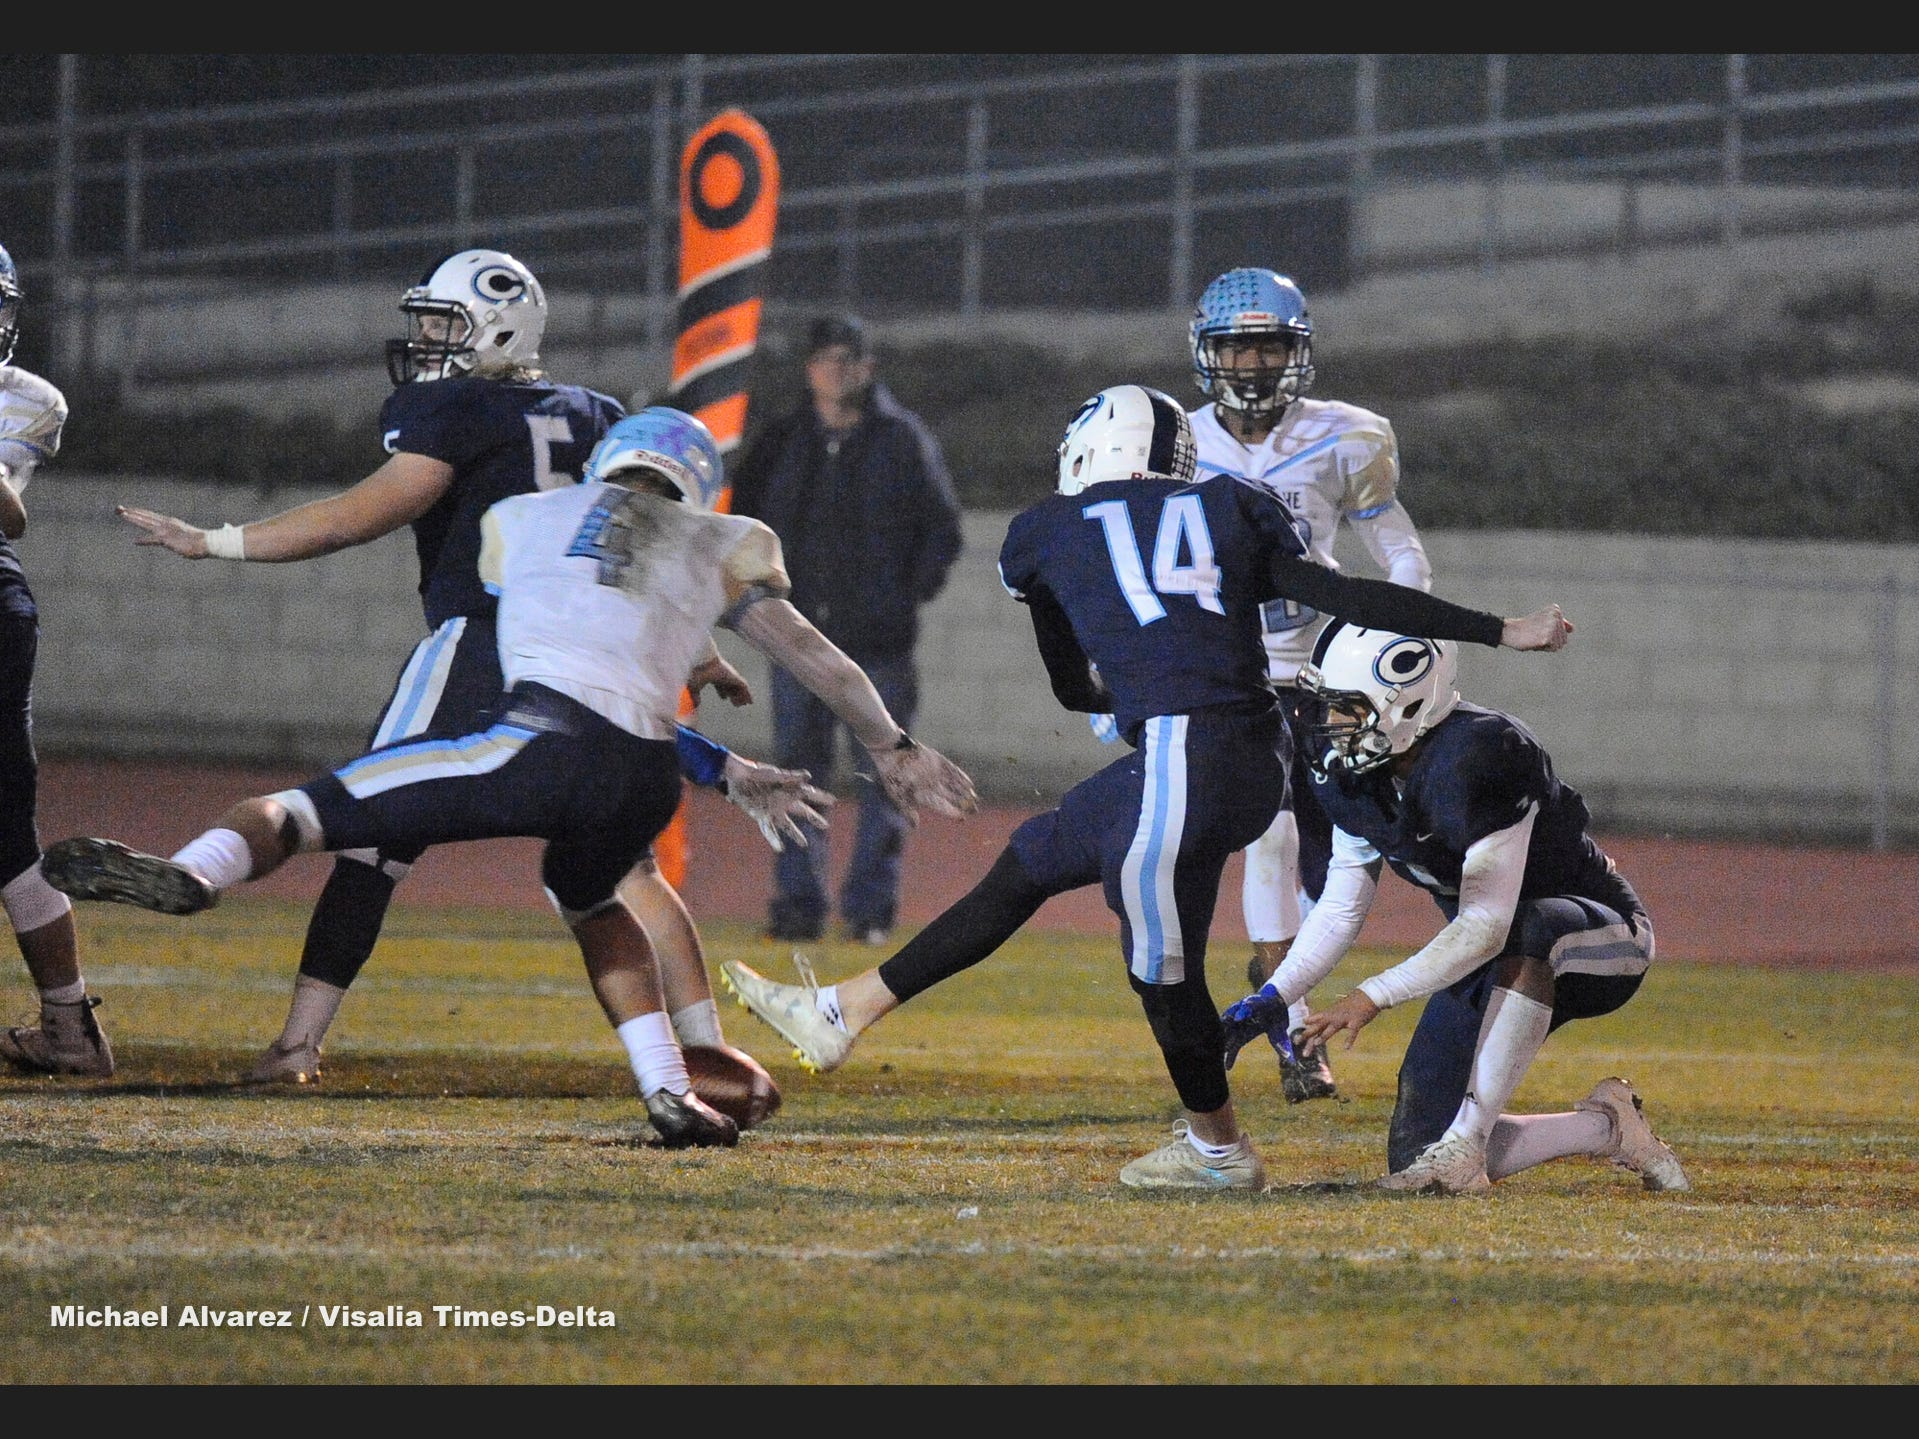 Monache against Central Valley Christian during the Central Section Division IV playoff on November 16, 2018.